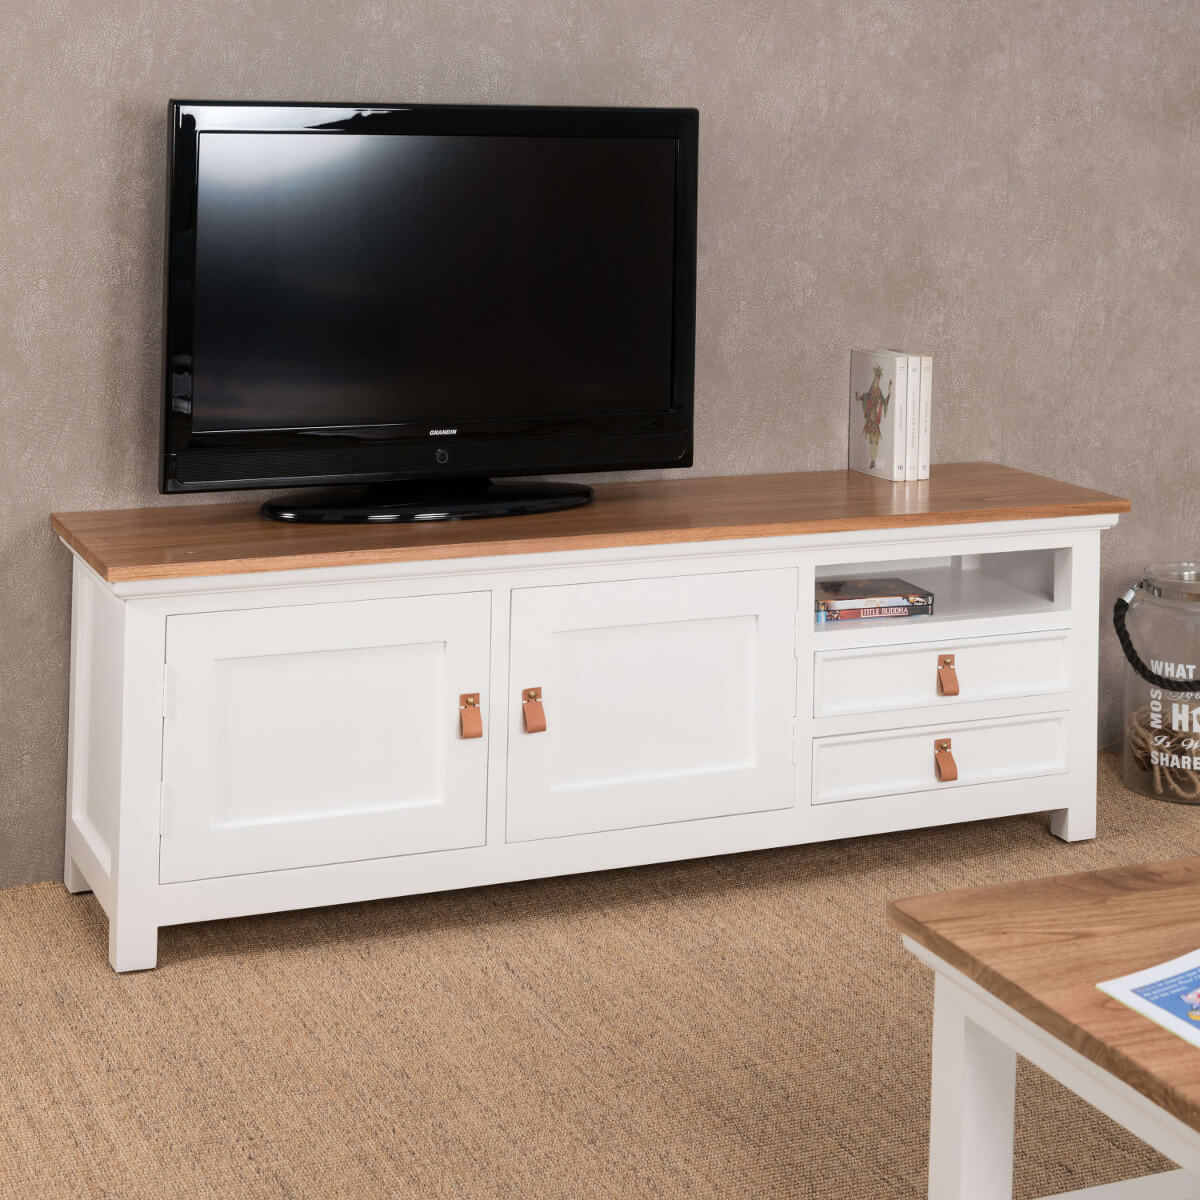 Meuble tv blanc meuble en teck bois massif rectangle for Meuble tv bois blanc